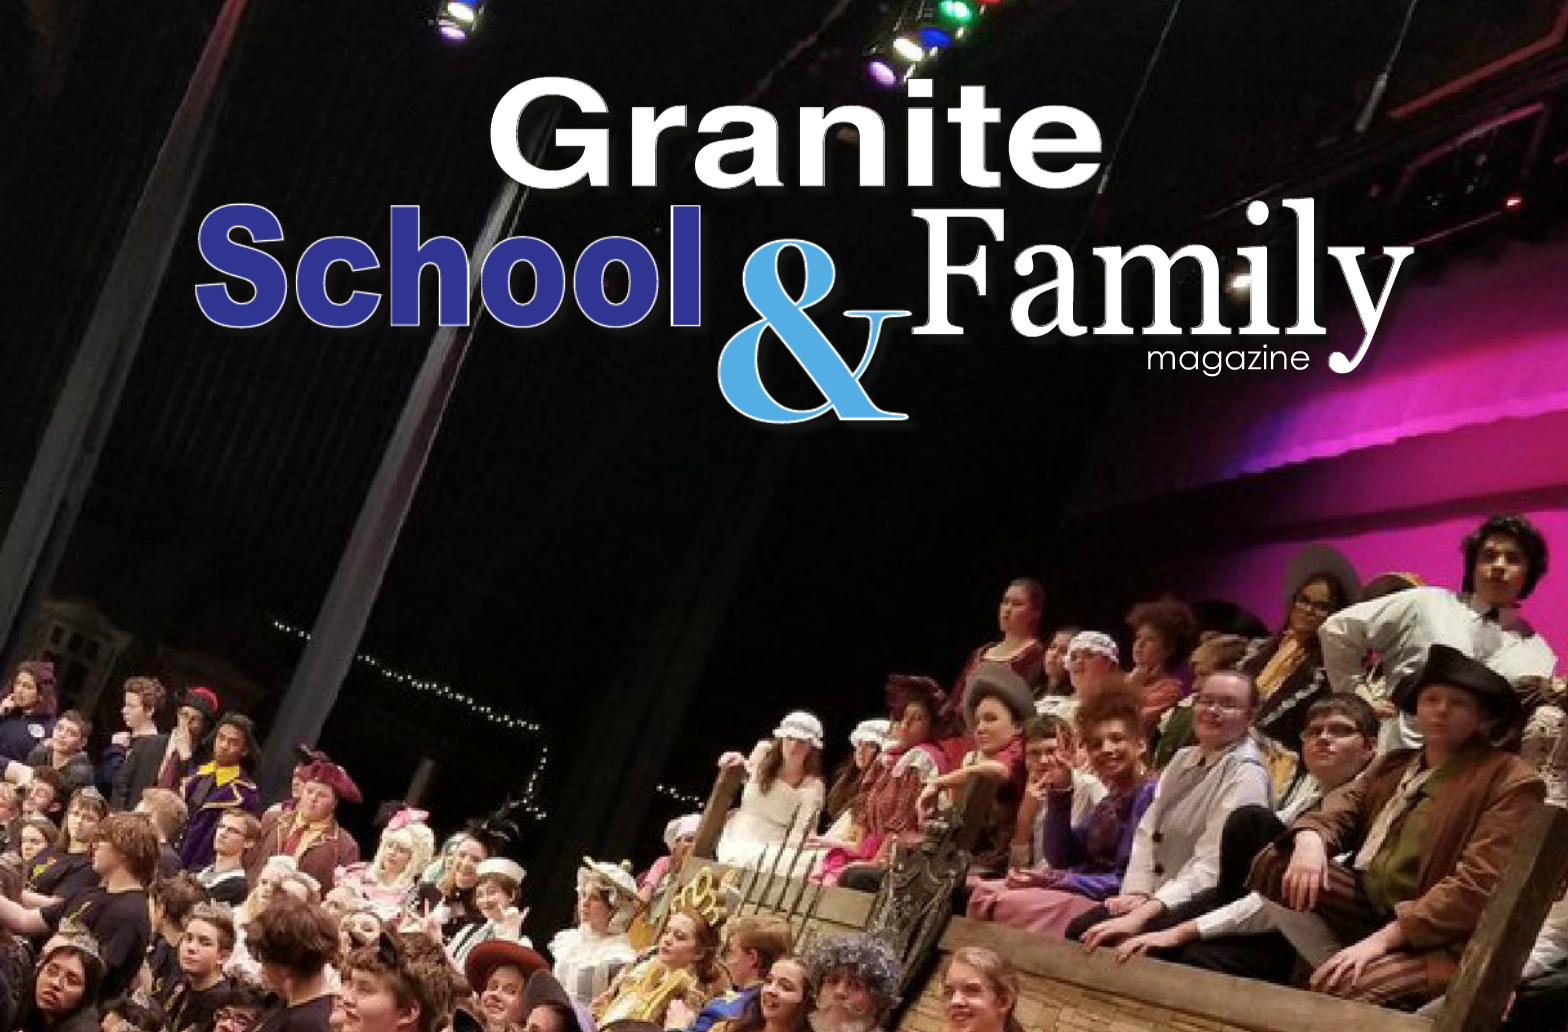 Latest Issue of Granite School & Family Magazine